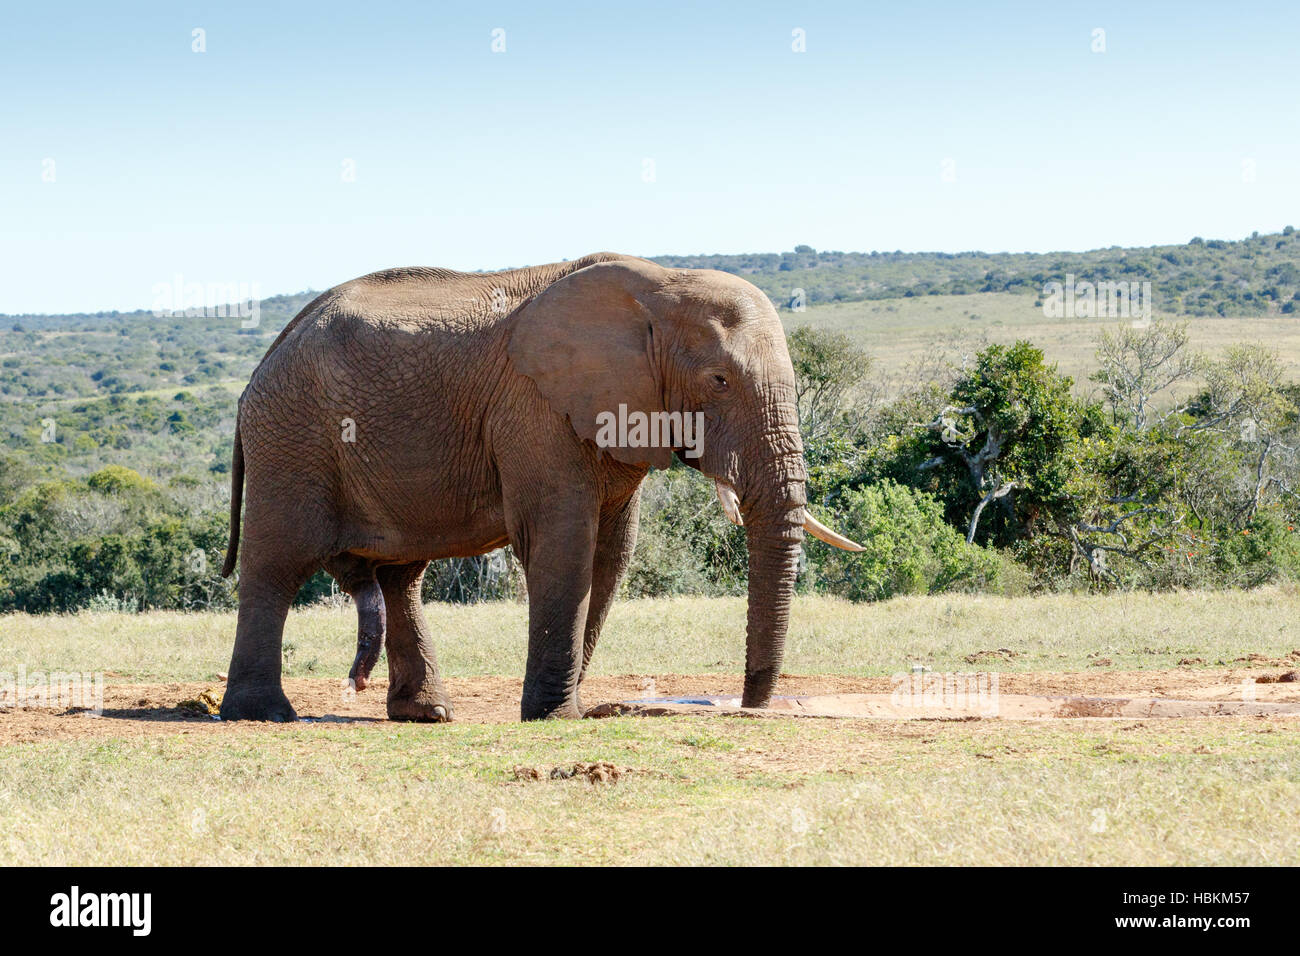 It is all hanging - African Bush Elephant - Stock Image